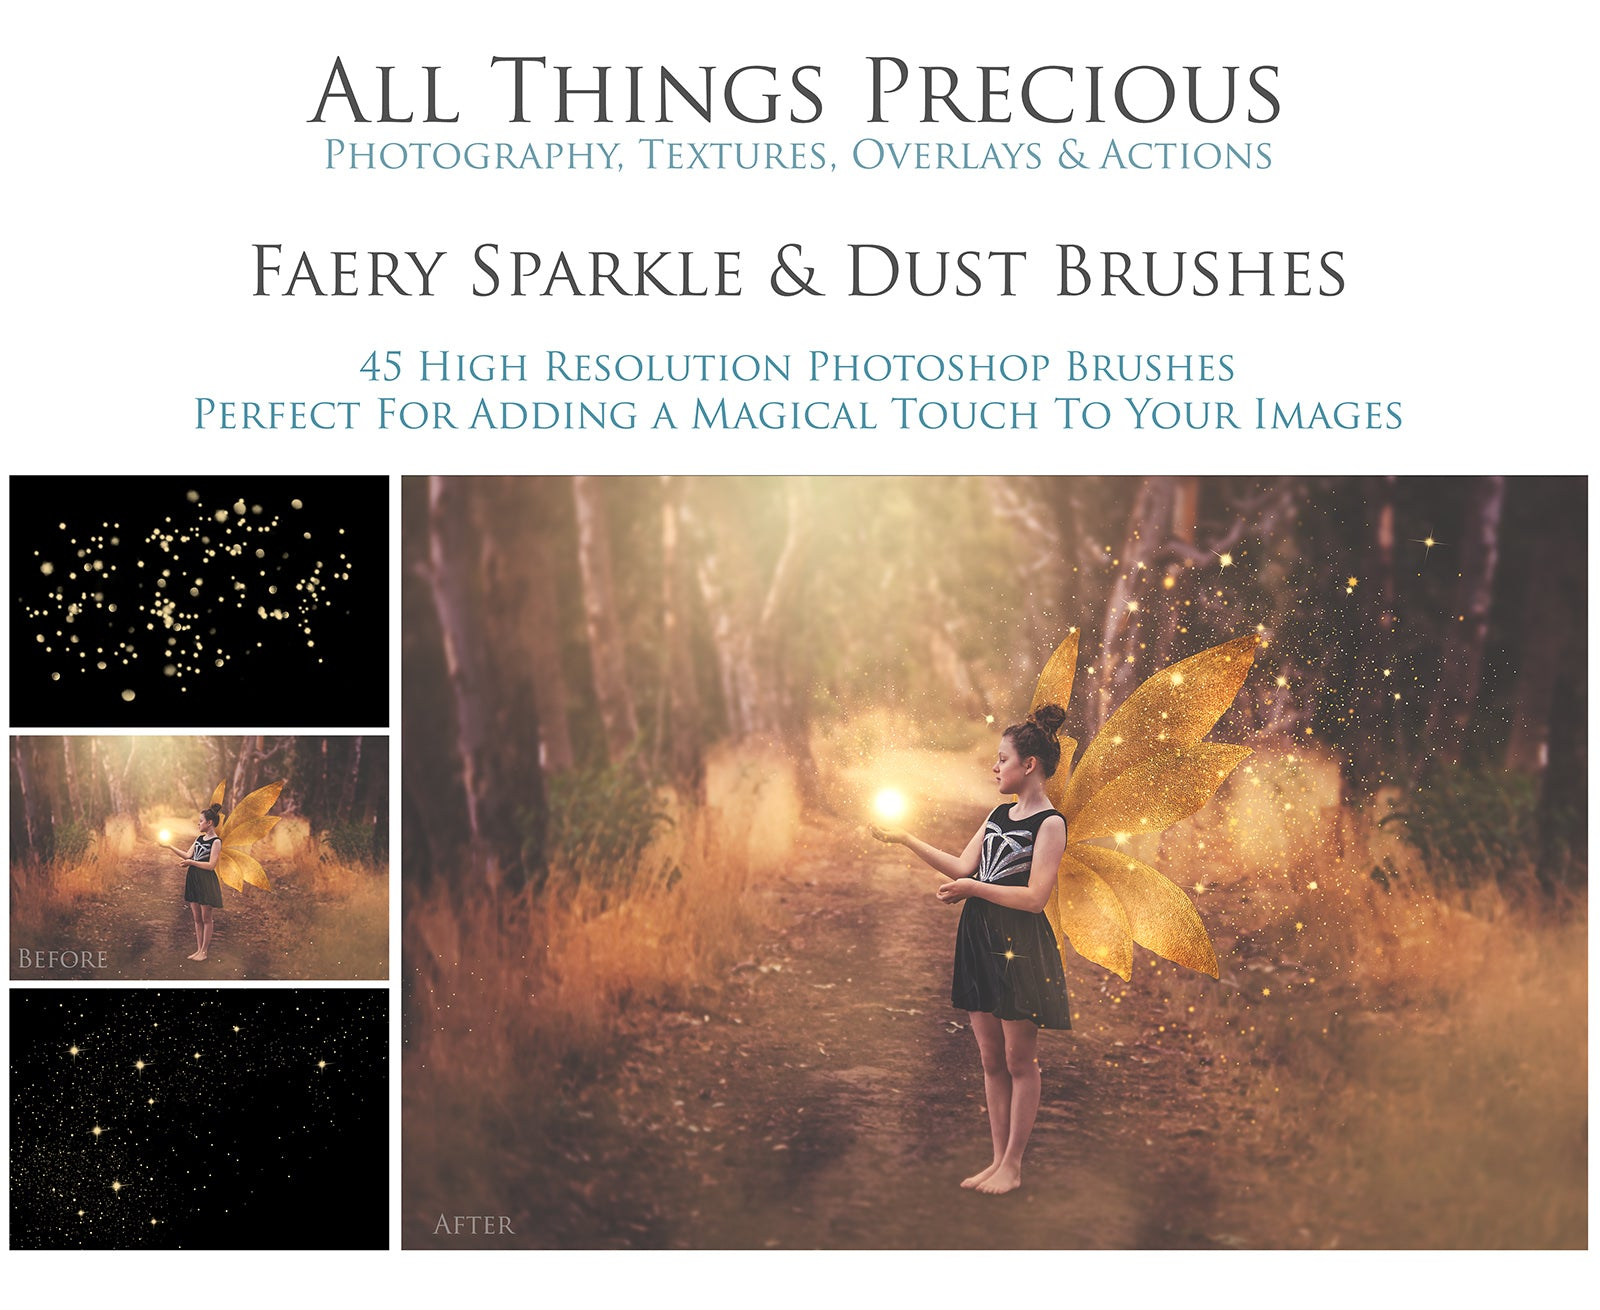 FAIRY SPARKLE & DUST Photoshop Brushes